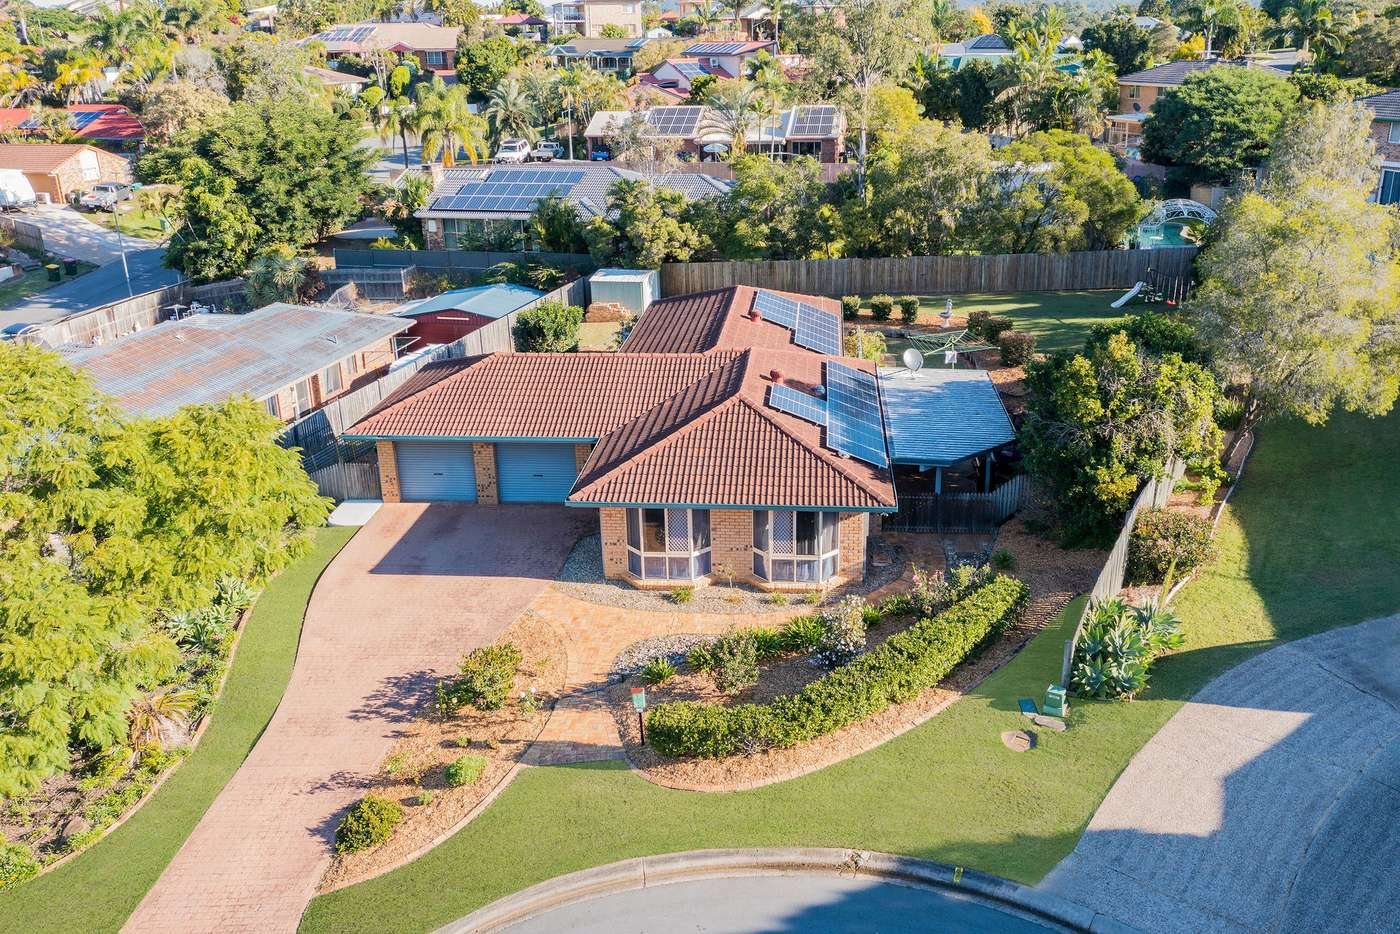 Main view of Homely house listing, 3 Eaton Place, Eatons Hill QLD 4037